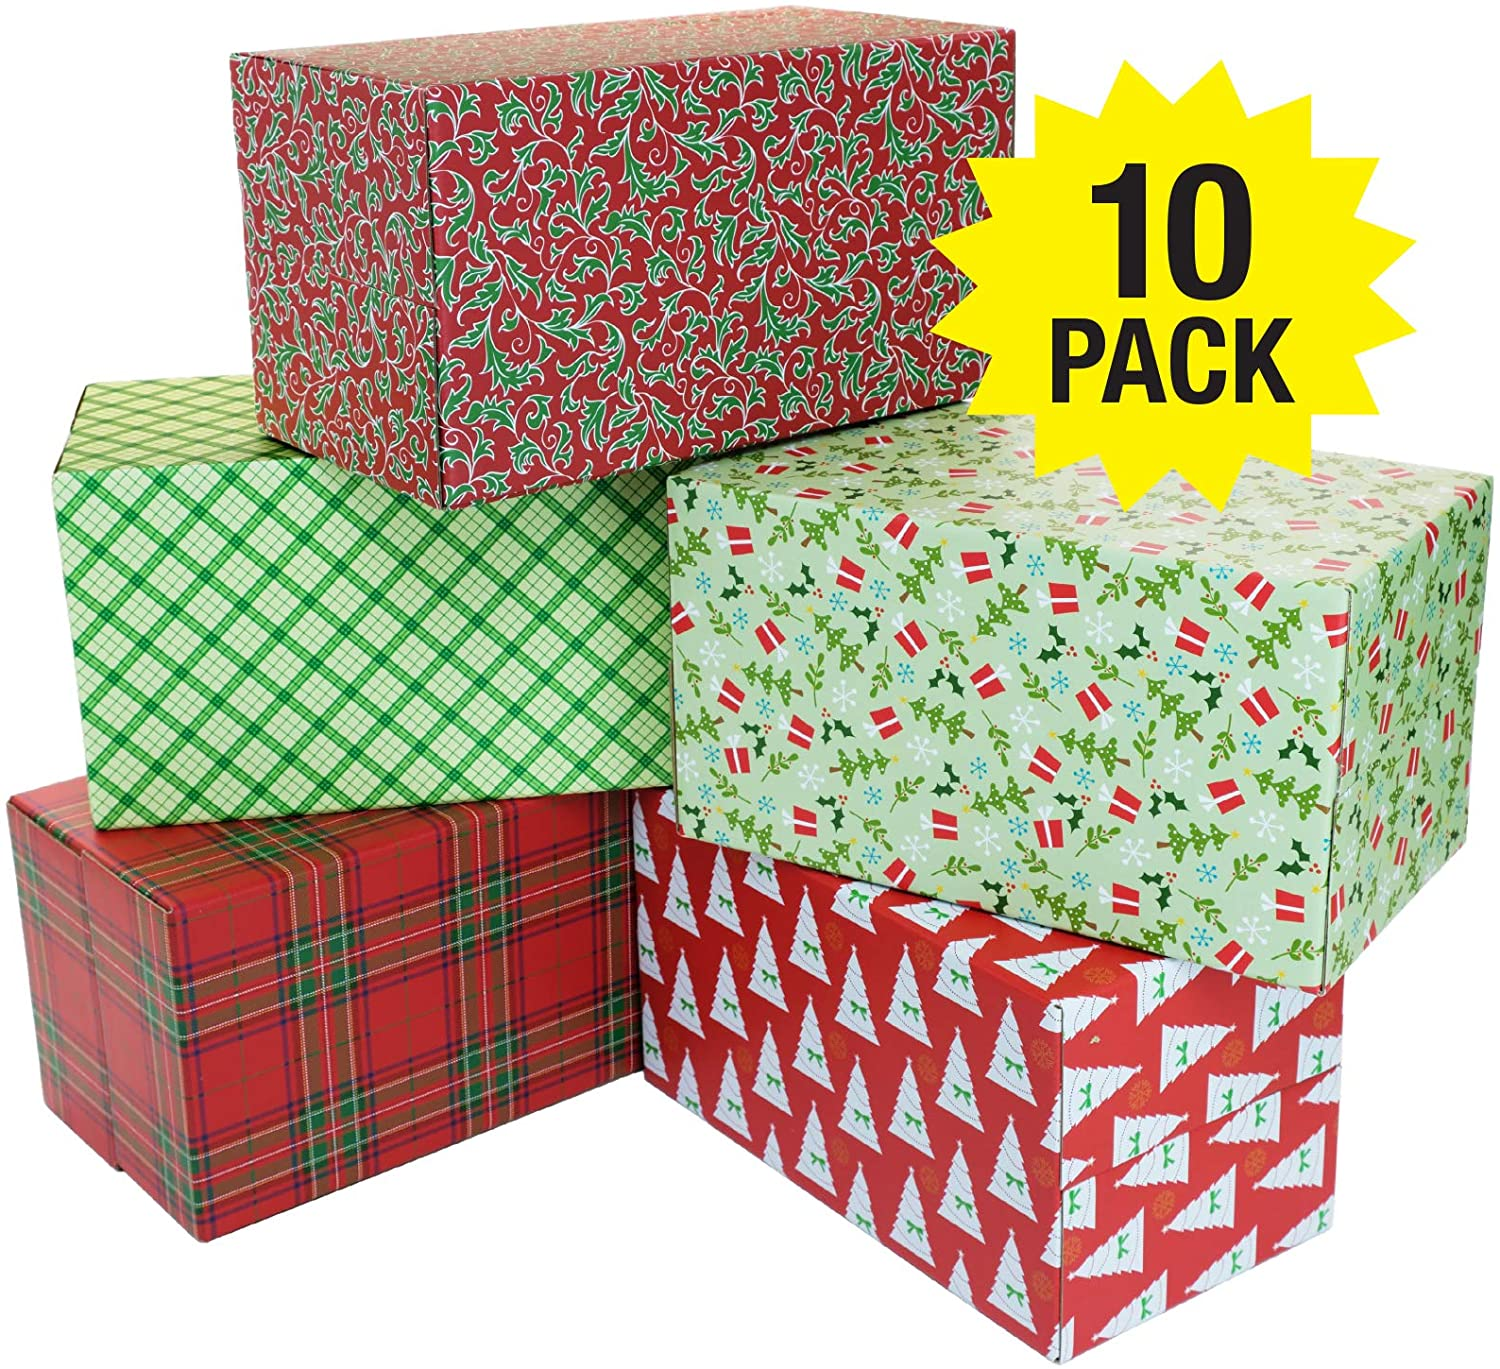 Holiday Gift Shipping Boxes (Pack of 10 - Assorted Patterns - 11.5